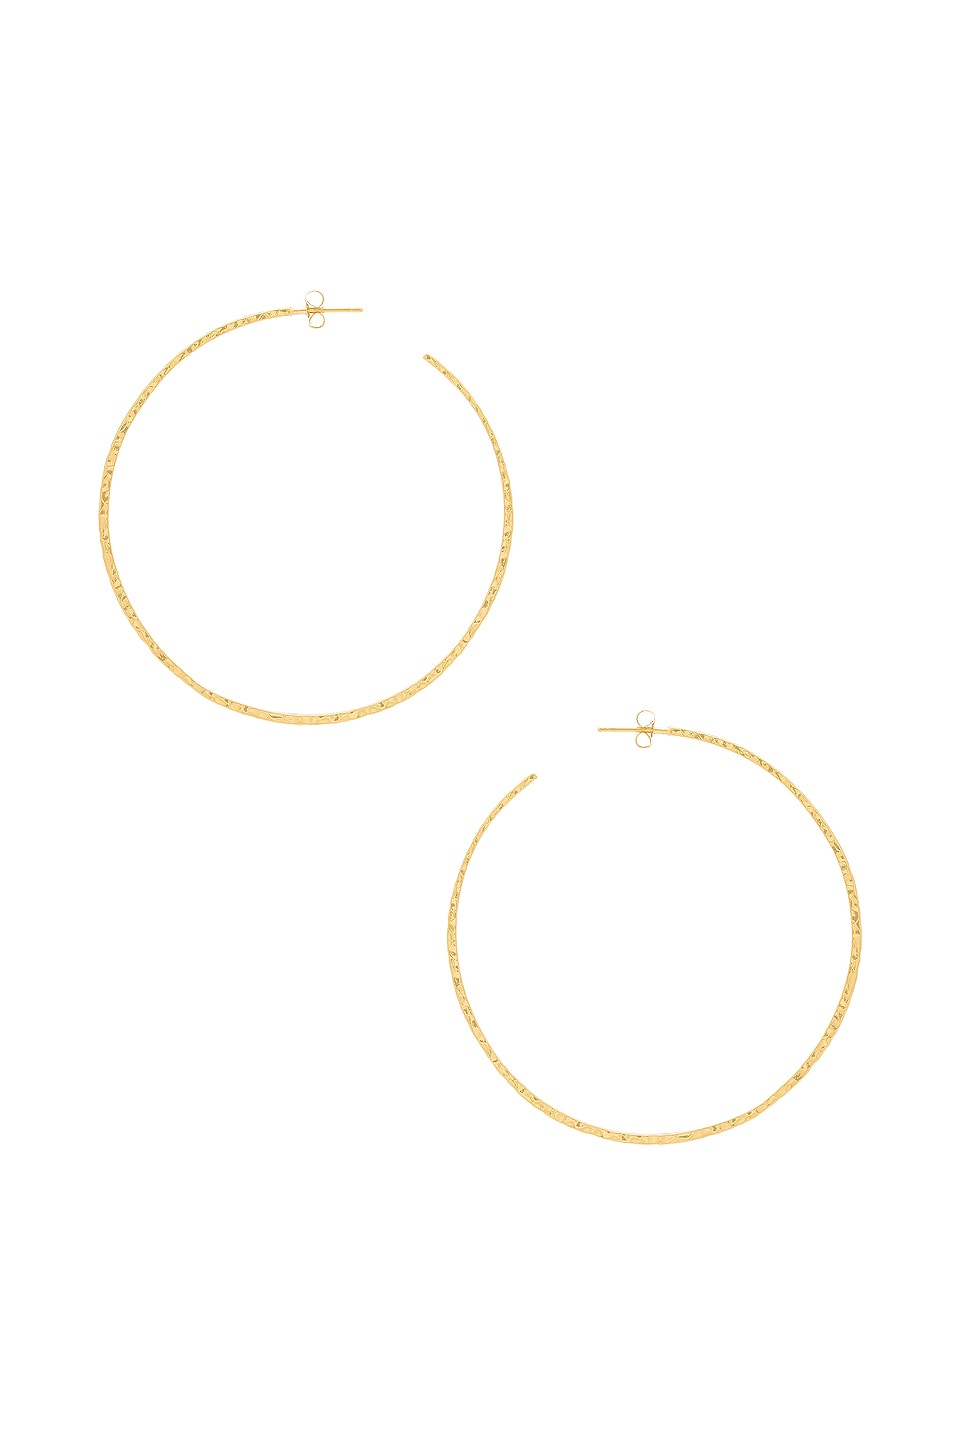 gorjana Taner XL Hoop Earrings in Gold